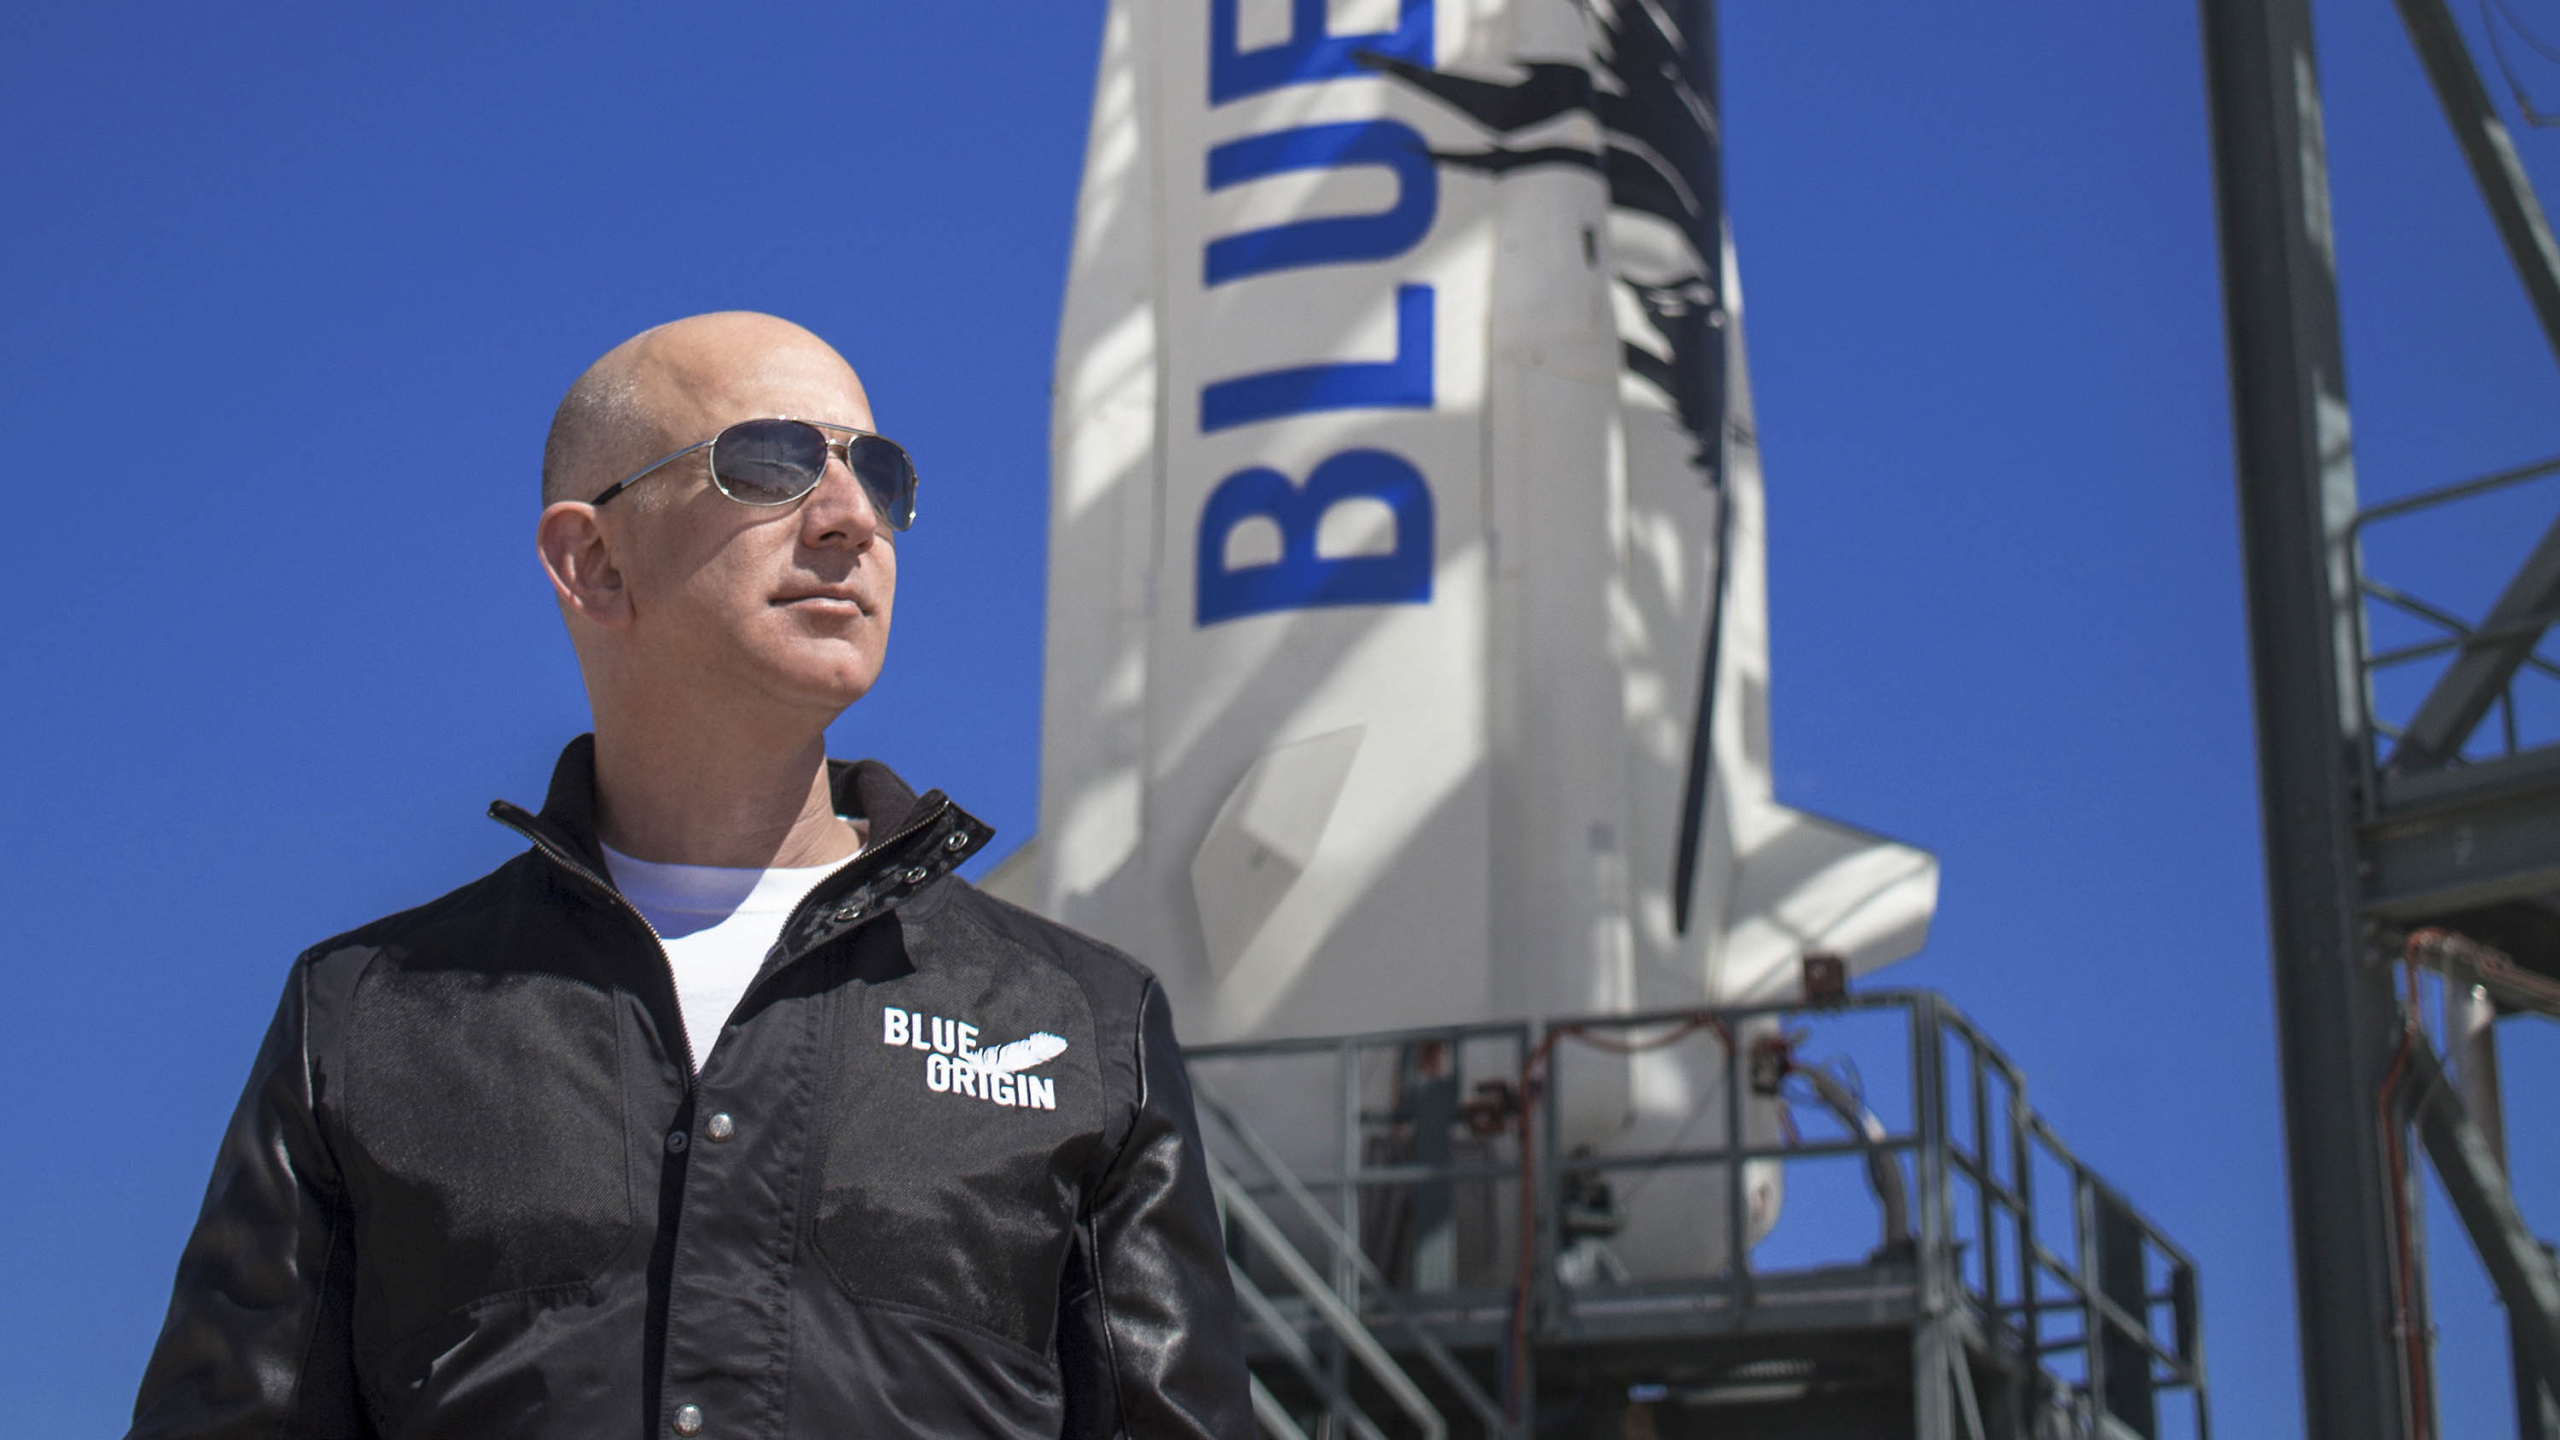 """Blue Origin preparing for first crewed flight with four crew, including founder Jeff Bezos and """"Mercury 13"""" aviatrix Wally Funk"""